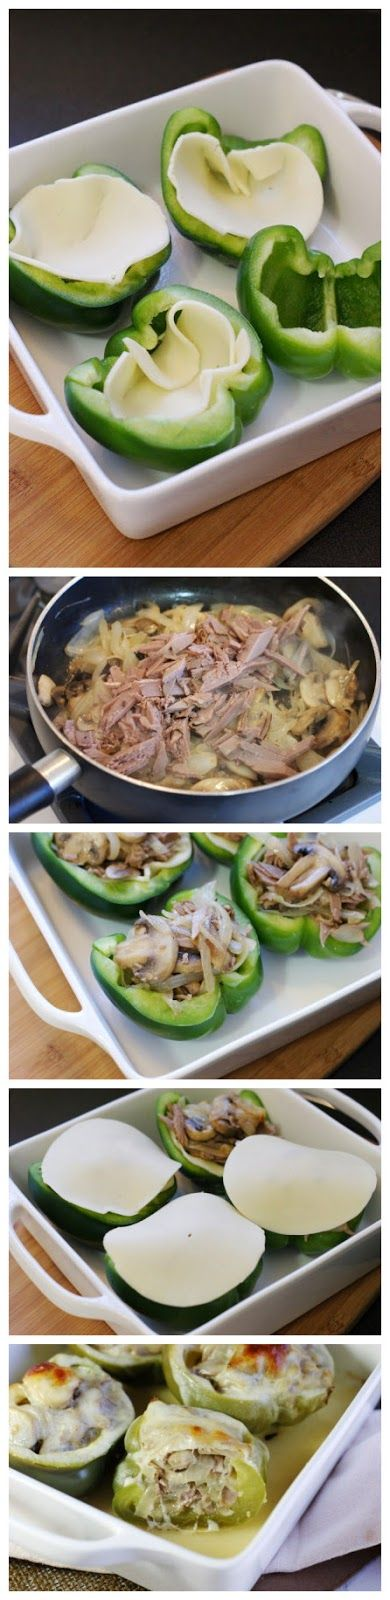 Philly Cheese Steak Stuffed Peppers...Bake at 350 degrees for 40-45 minutes until peppers are tender, covering loosely with aluminum foil after the first 20 minutes of baking.